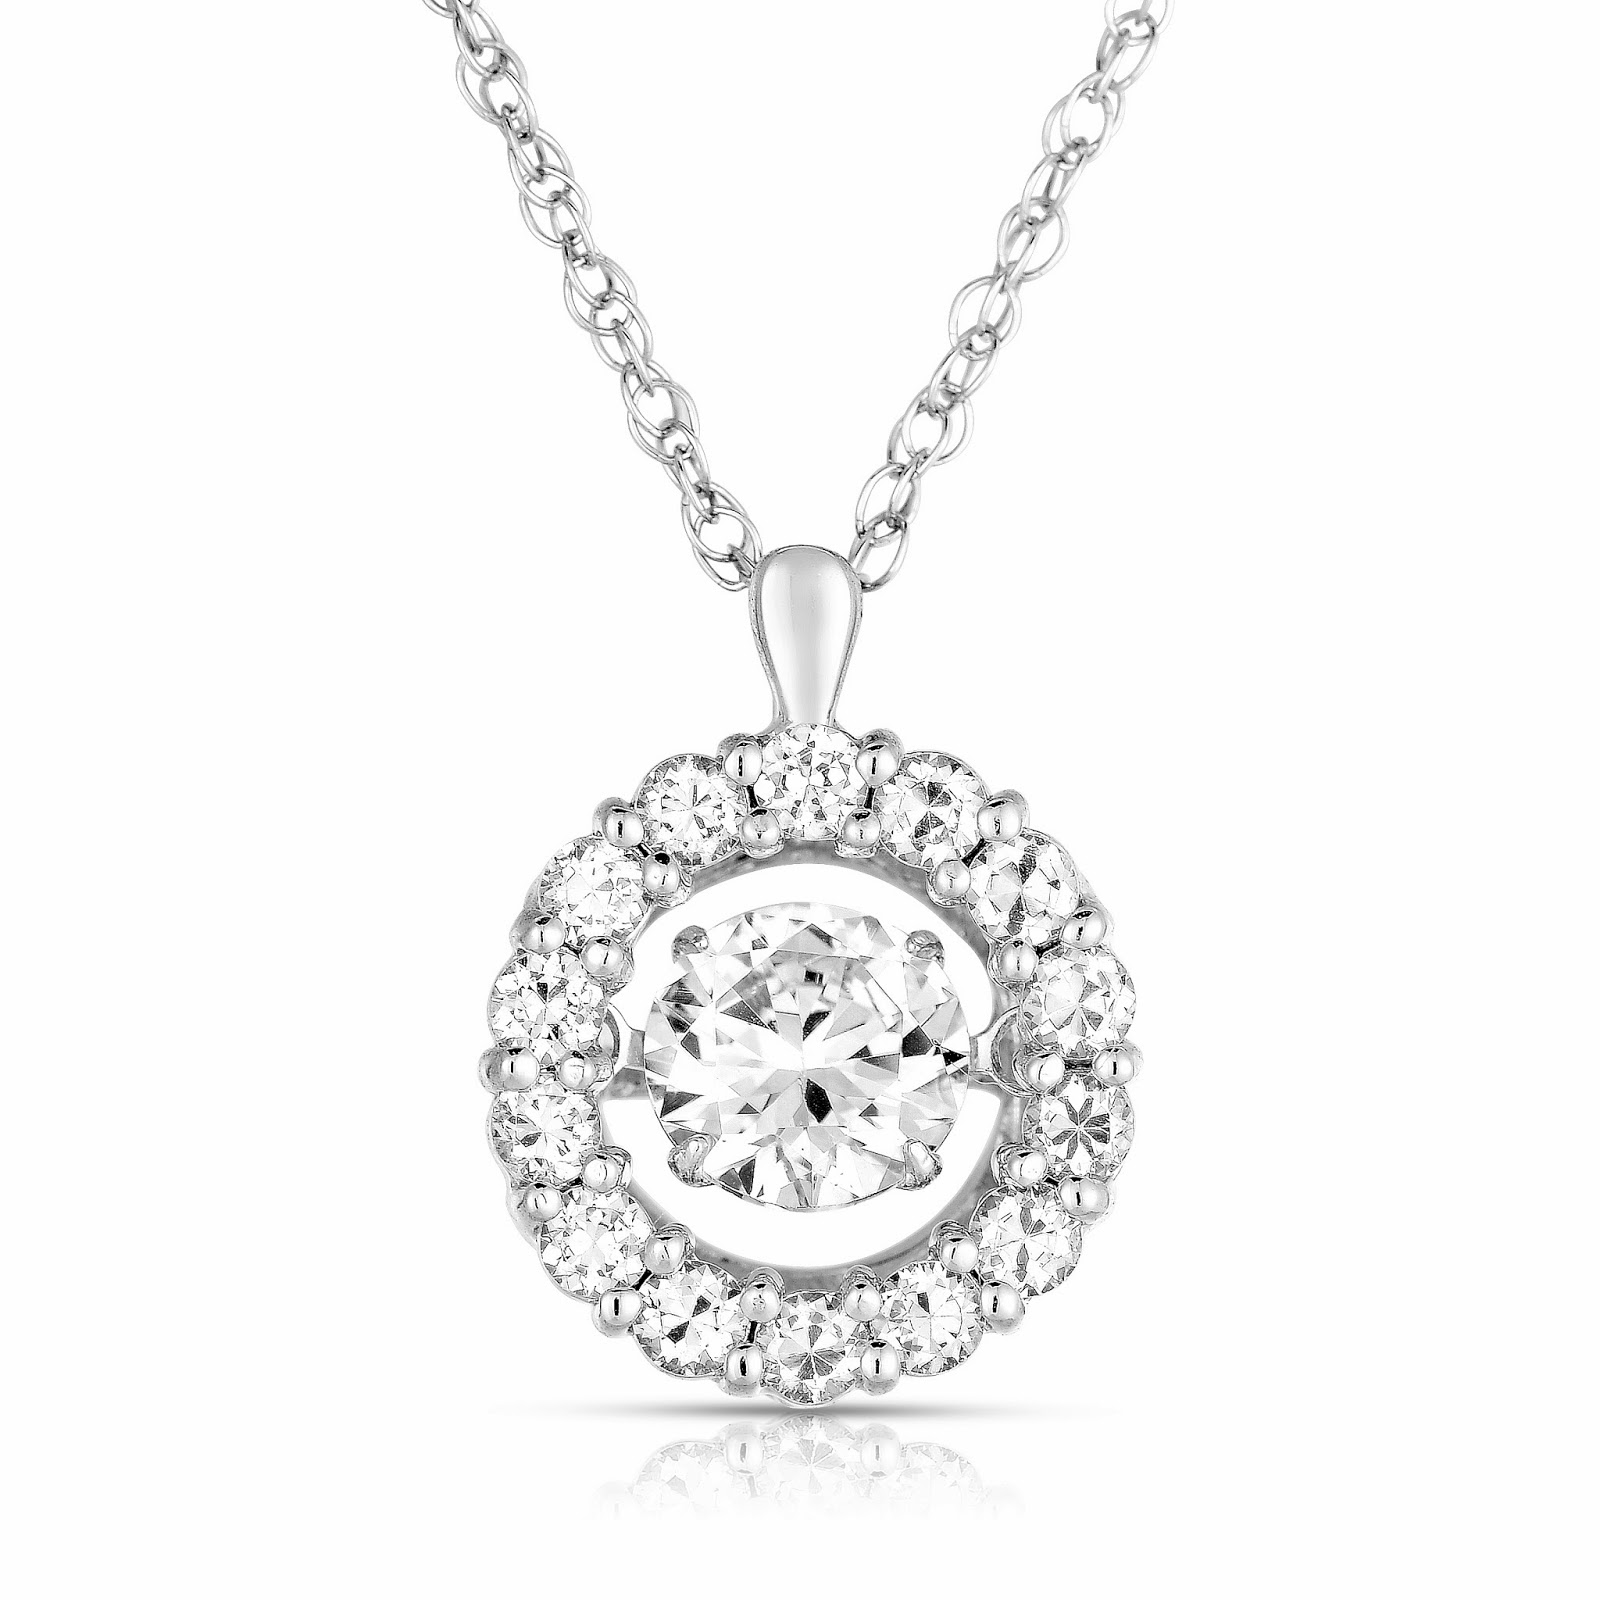 Embody More Light 99 Diamonds In Rhythm Inspired Pendant